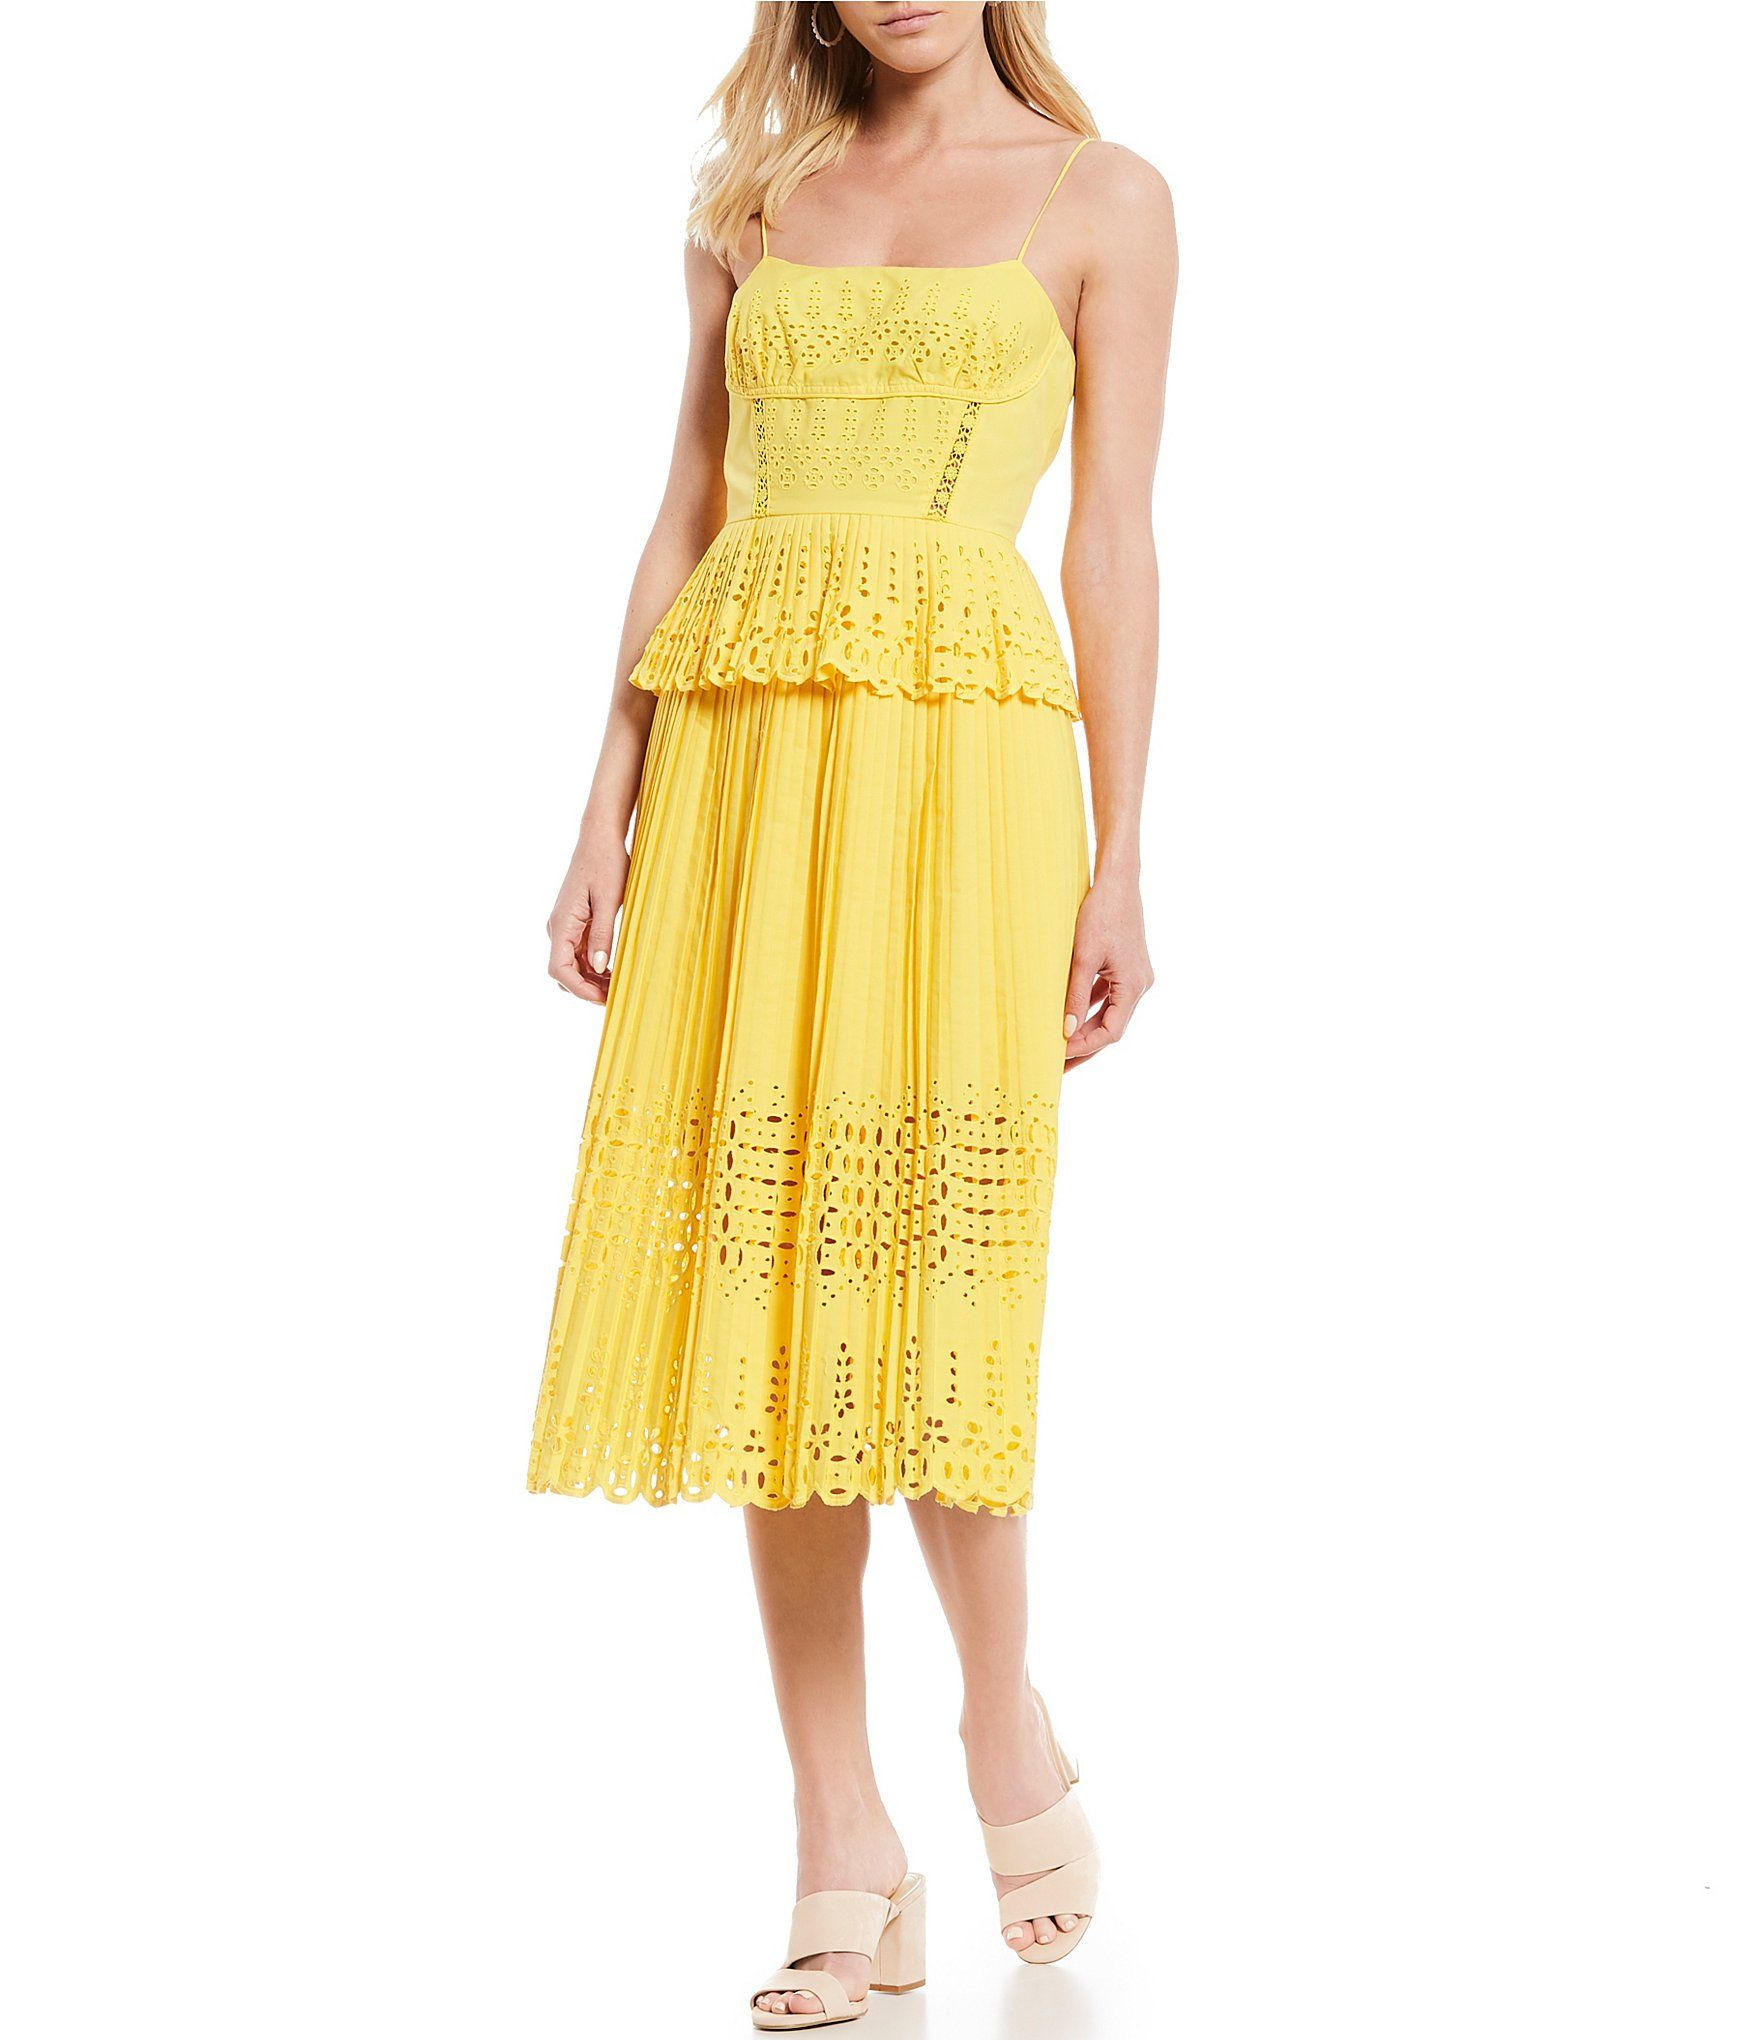 16de54dc75 Shop for Gianni Bini Lana Eyelet Peplum Spaghetti Strap Midi Dress at  Dillards.com. Visit Dillards.com to find clothing, accessories, shoes, ...